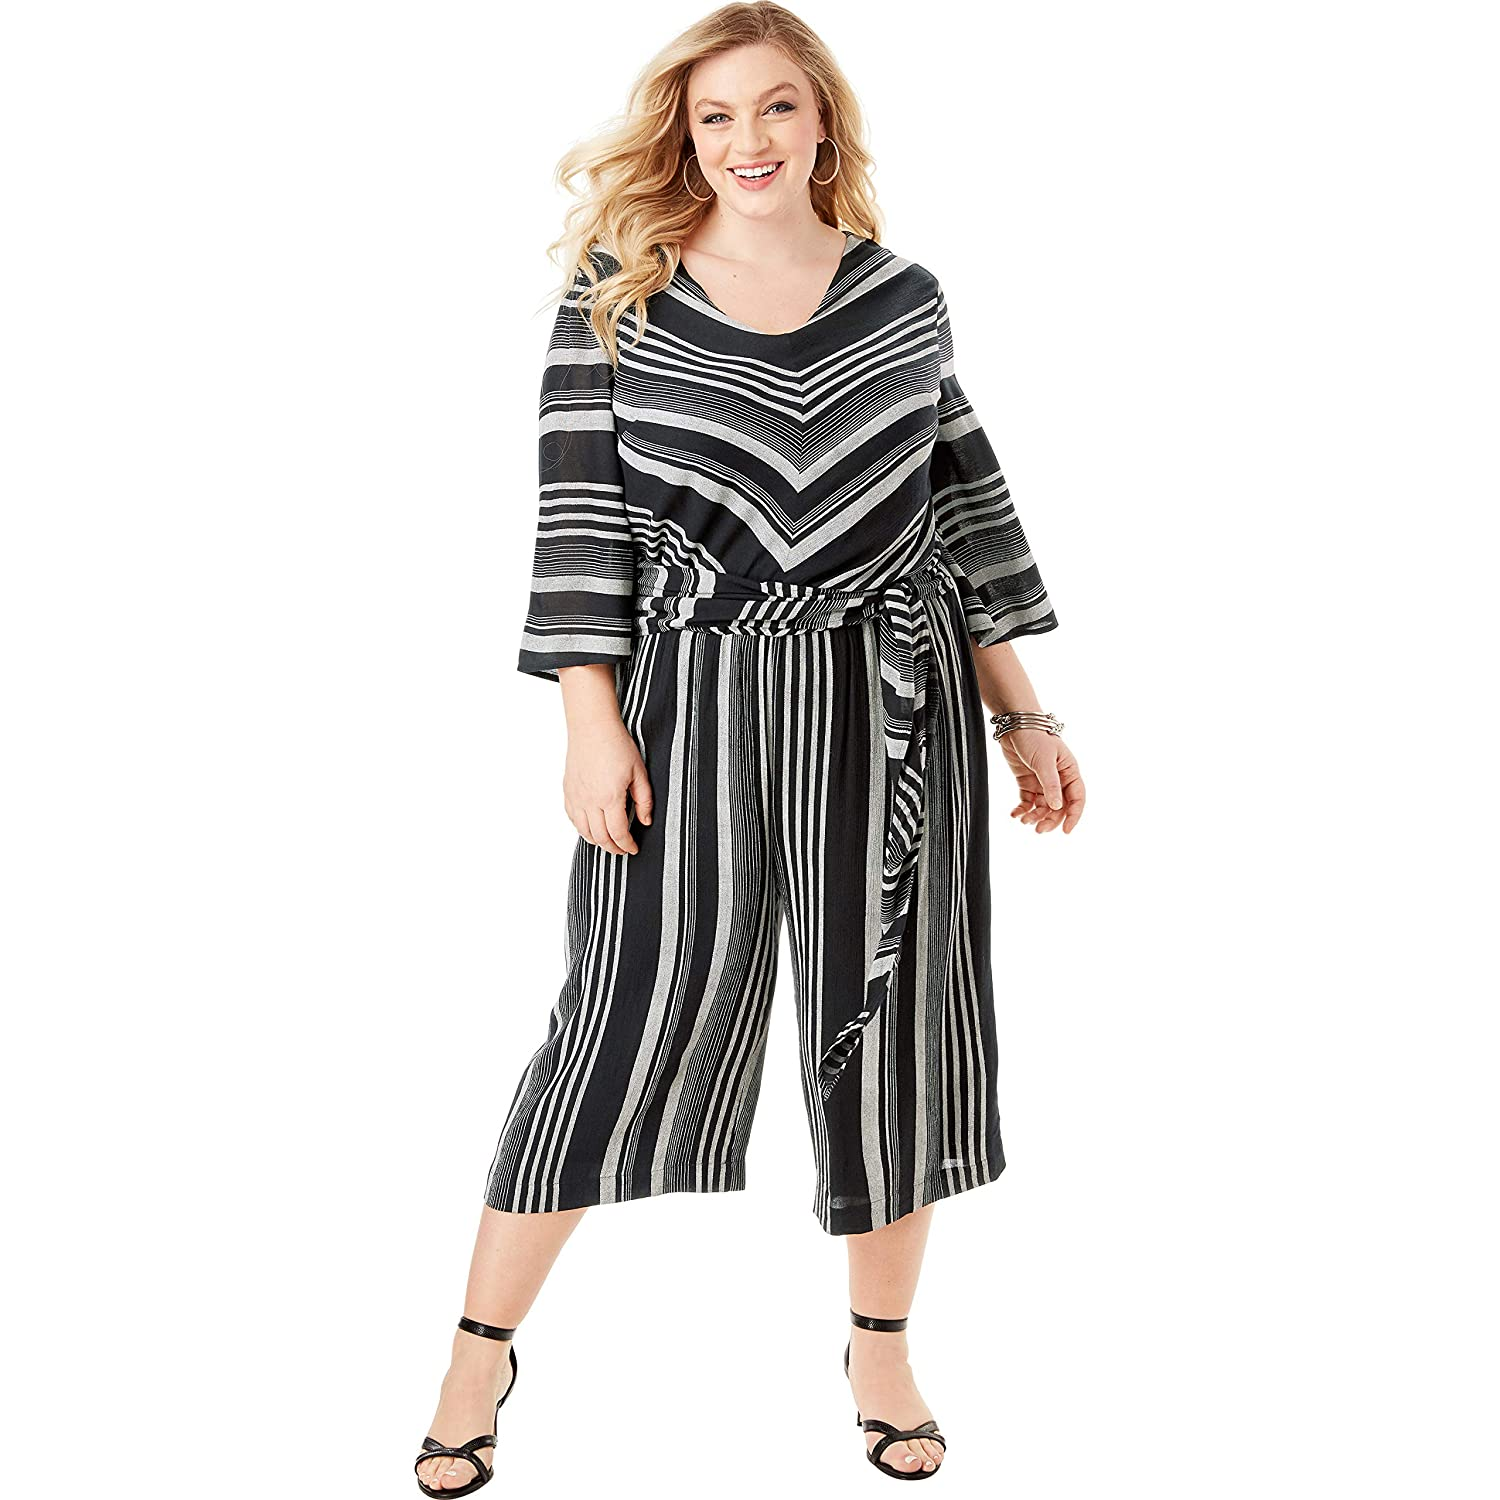 Flattering Dresses For Plus Size Pear Shaped